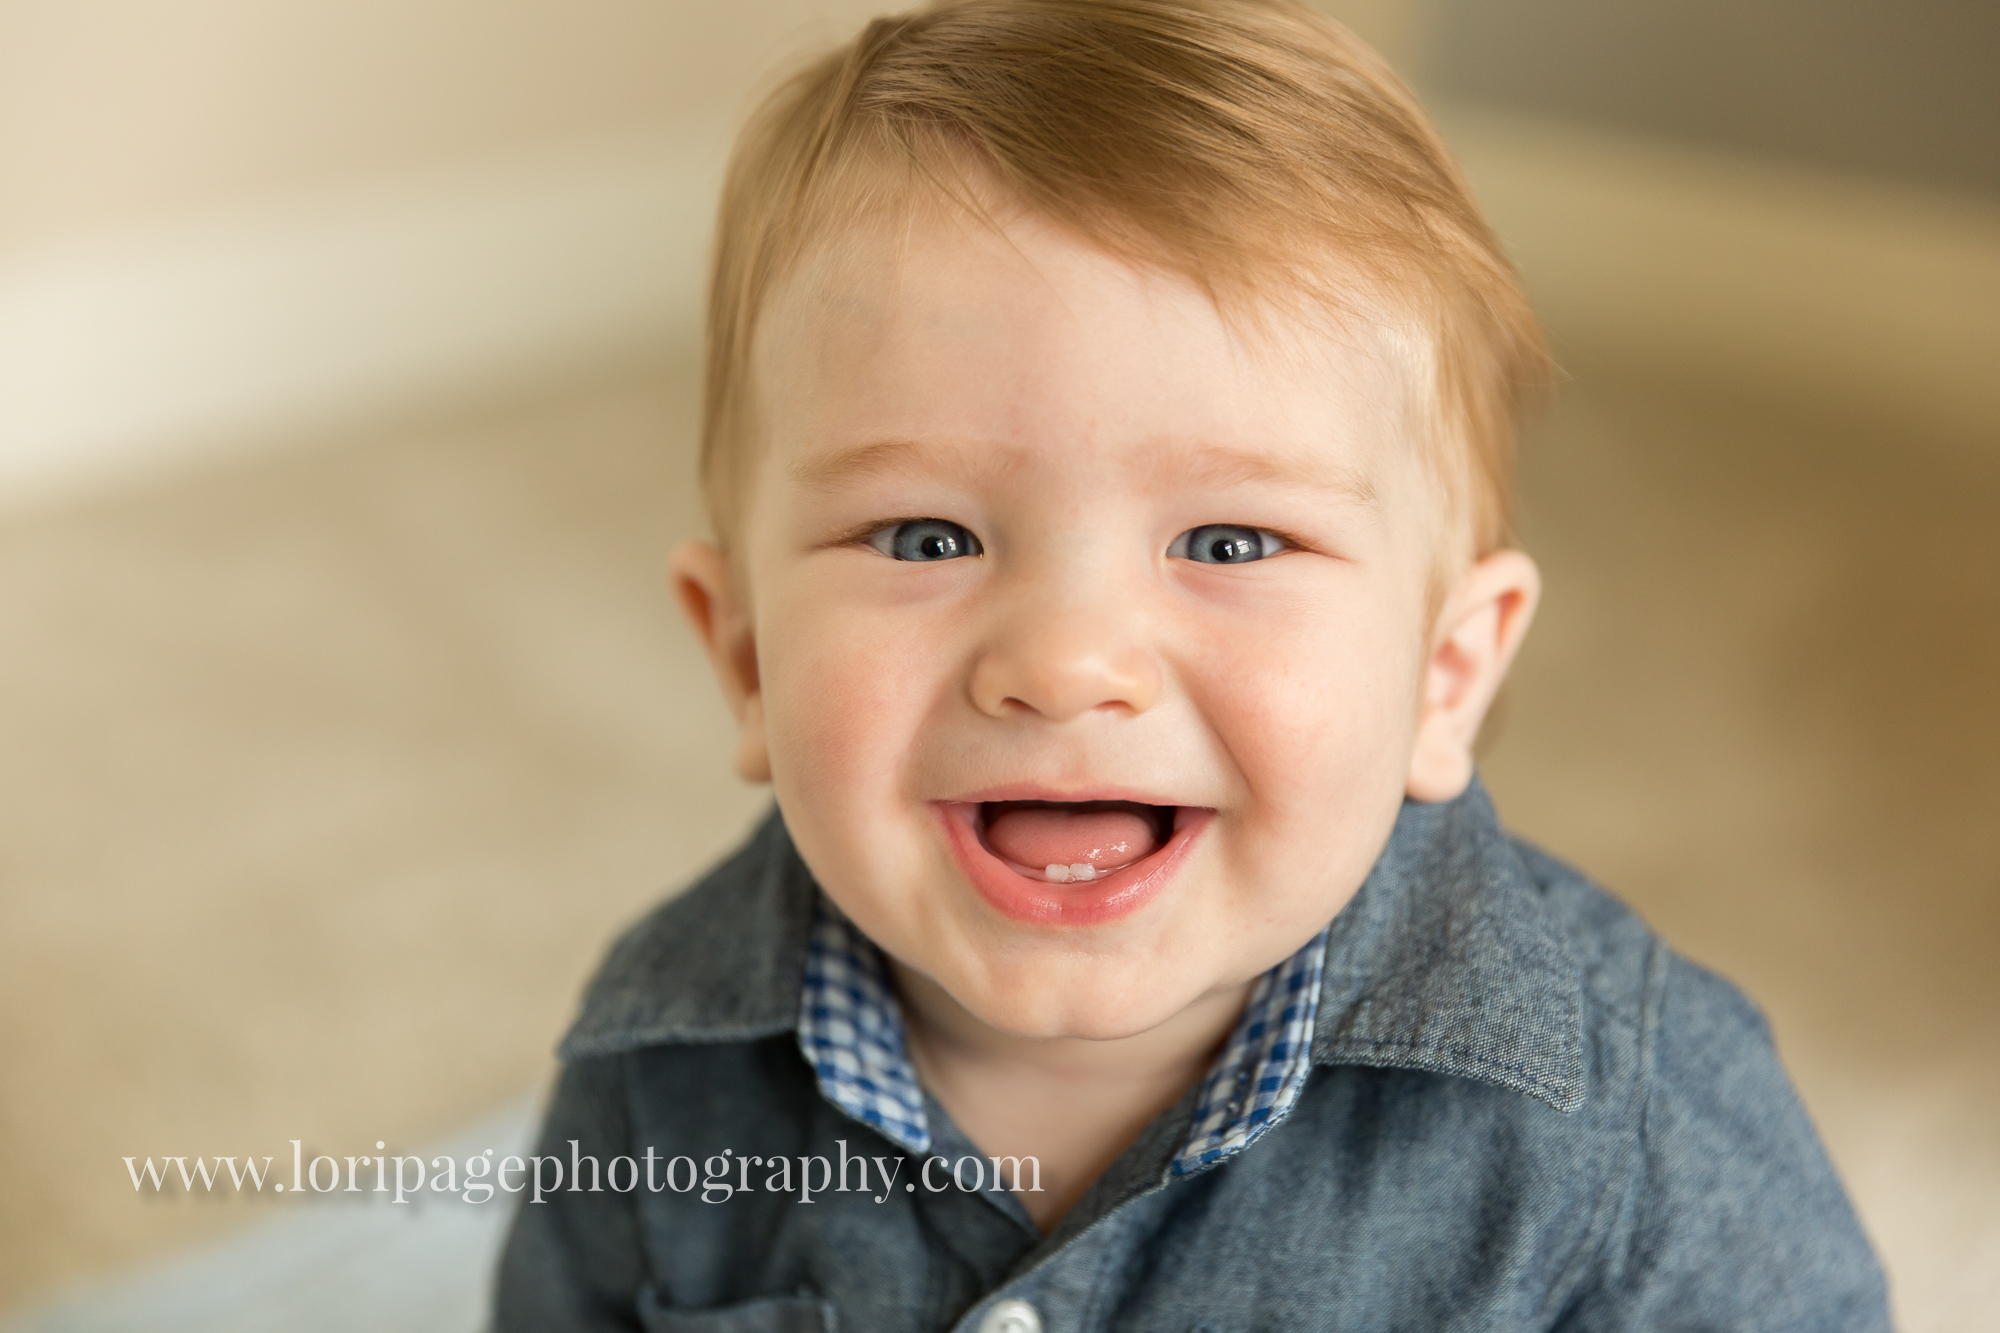 Growing up fast! 7 months old {Ann Arbor Baby Photographer}